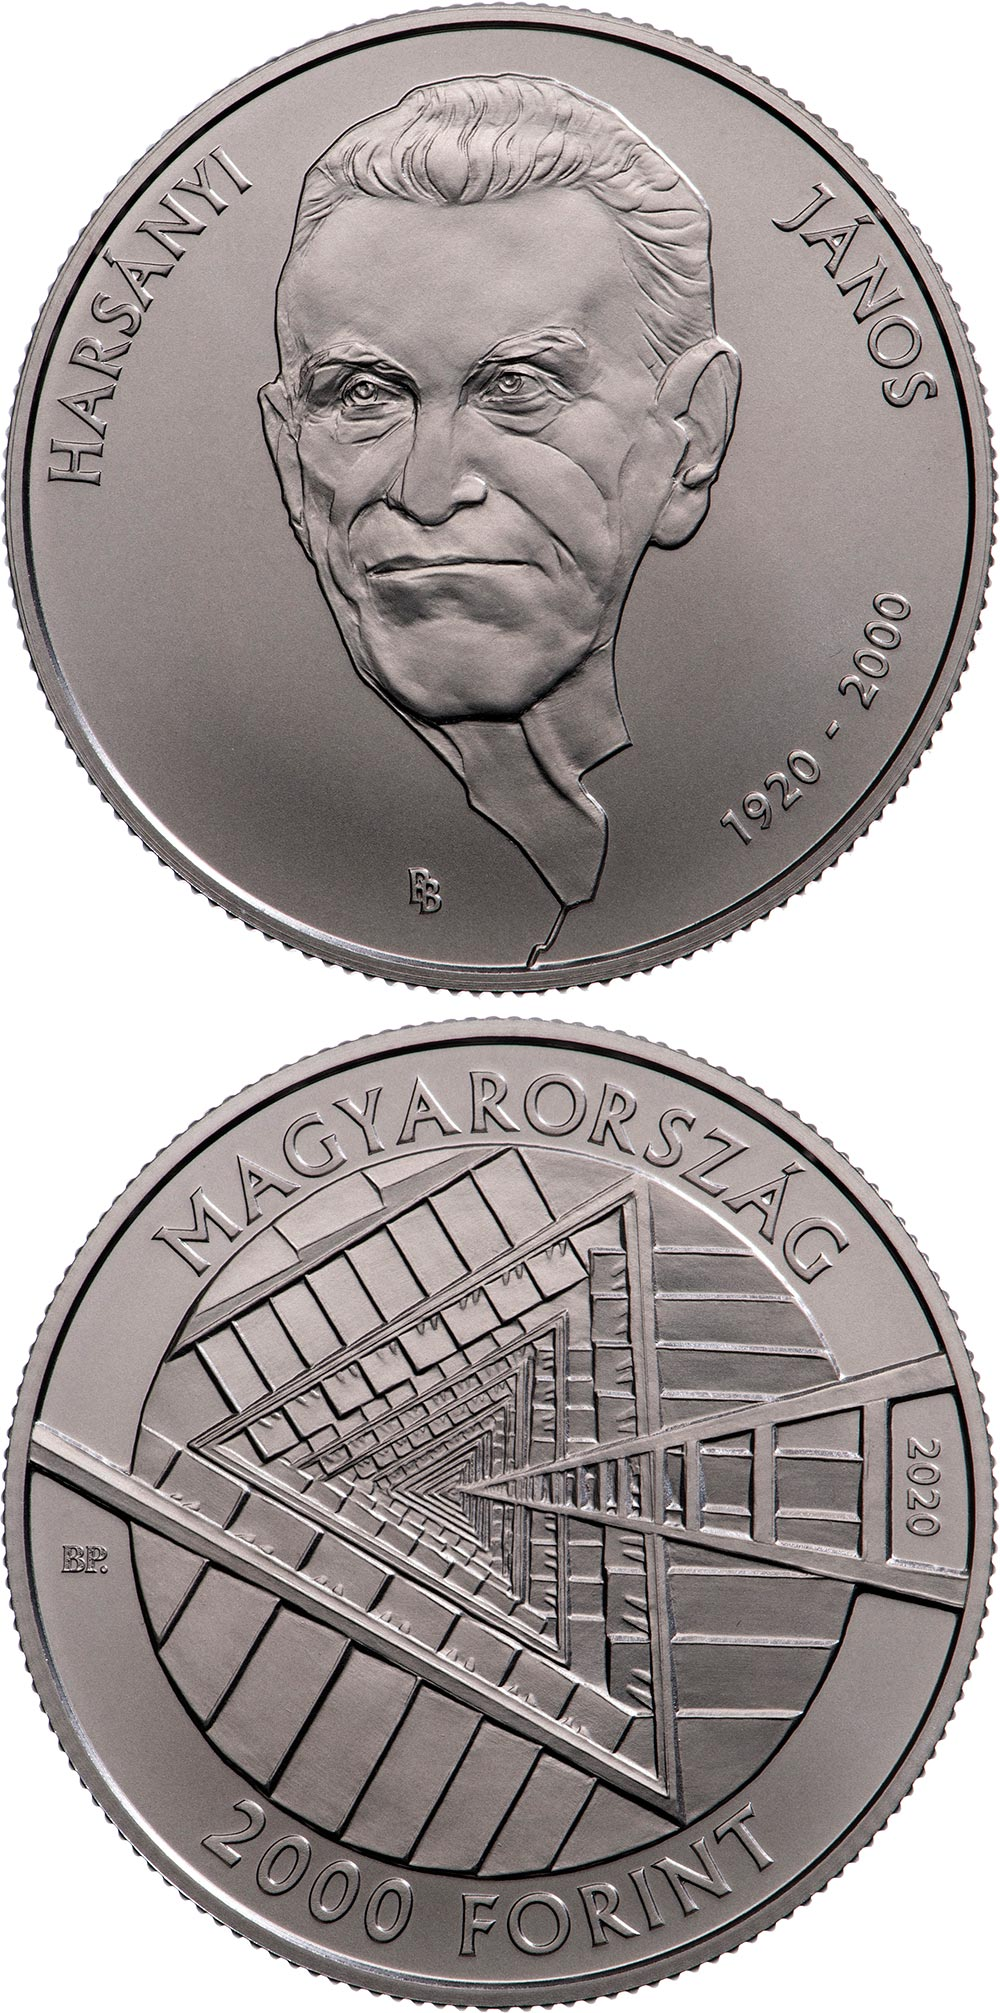 Image of 2000 forint coin - 100th Anniversary of the Birth of János Harsányi | Hungary 2020.  The Copper–Nickel (CuNi) coin is of BU quality.